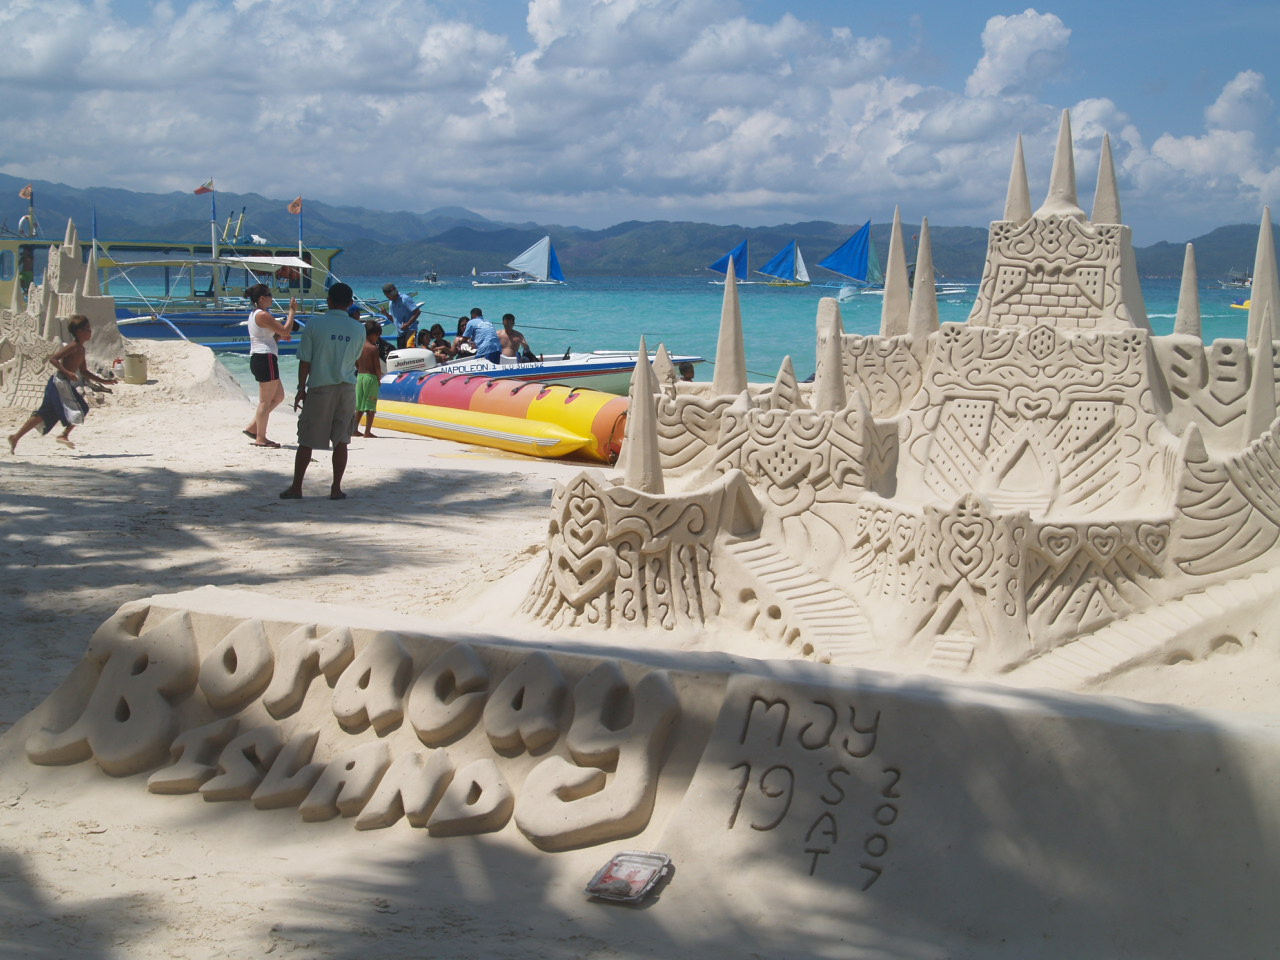 Sand Castle on The Beach Wallpaper